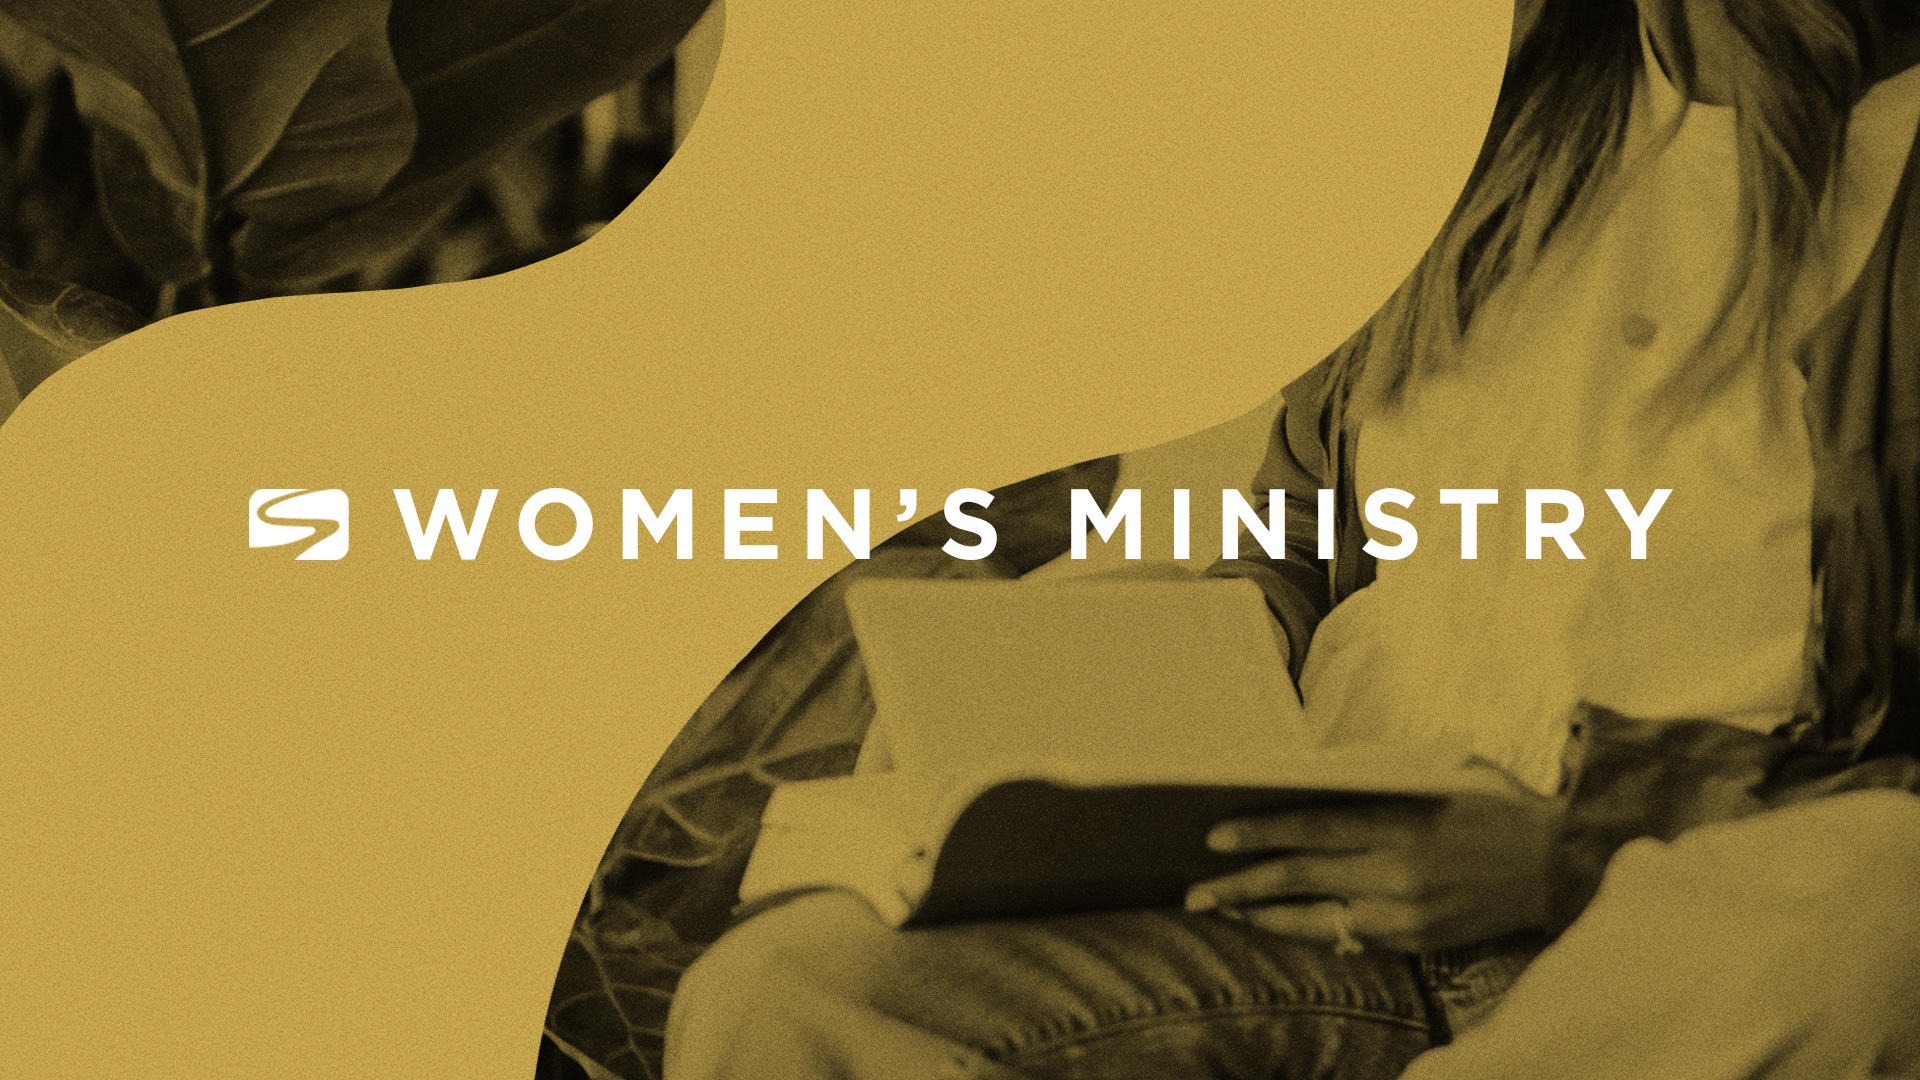 Womens-Ministry-TITLE-1920x1080